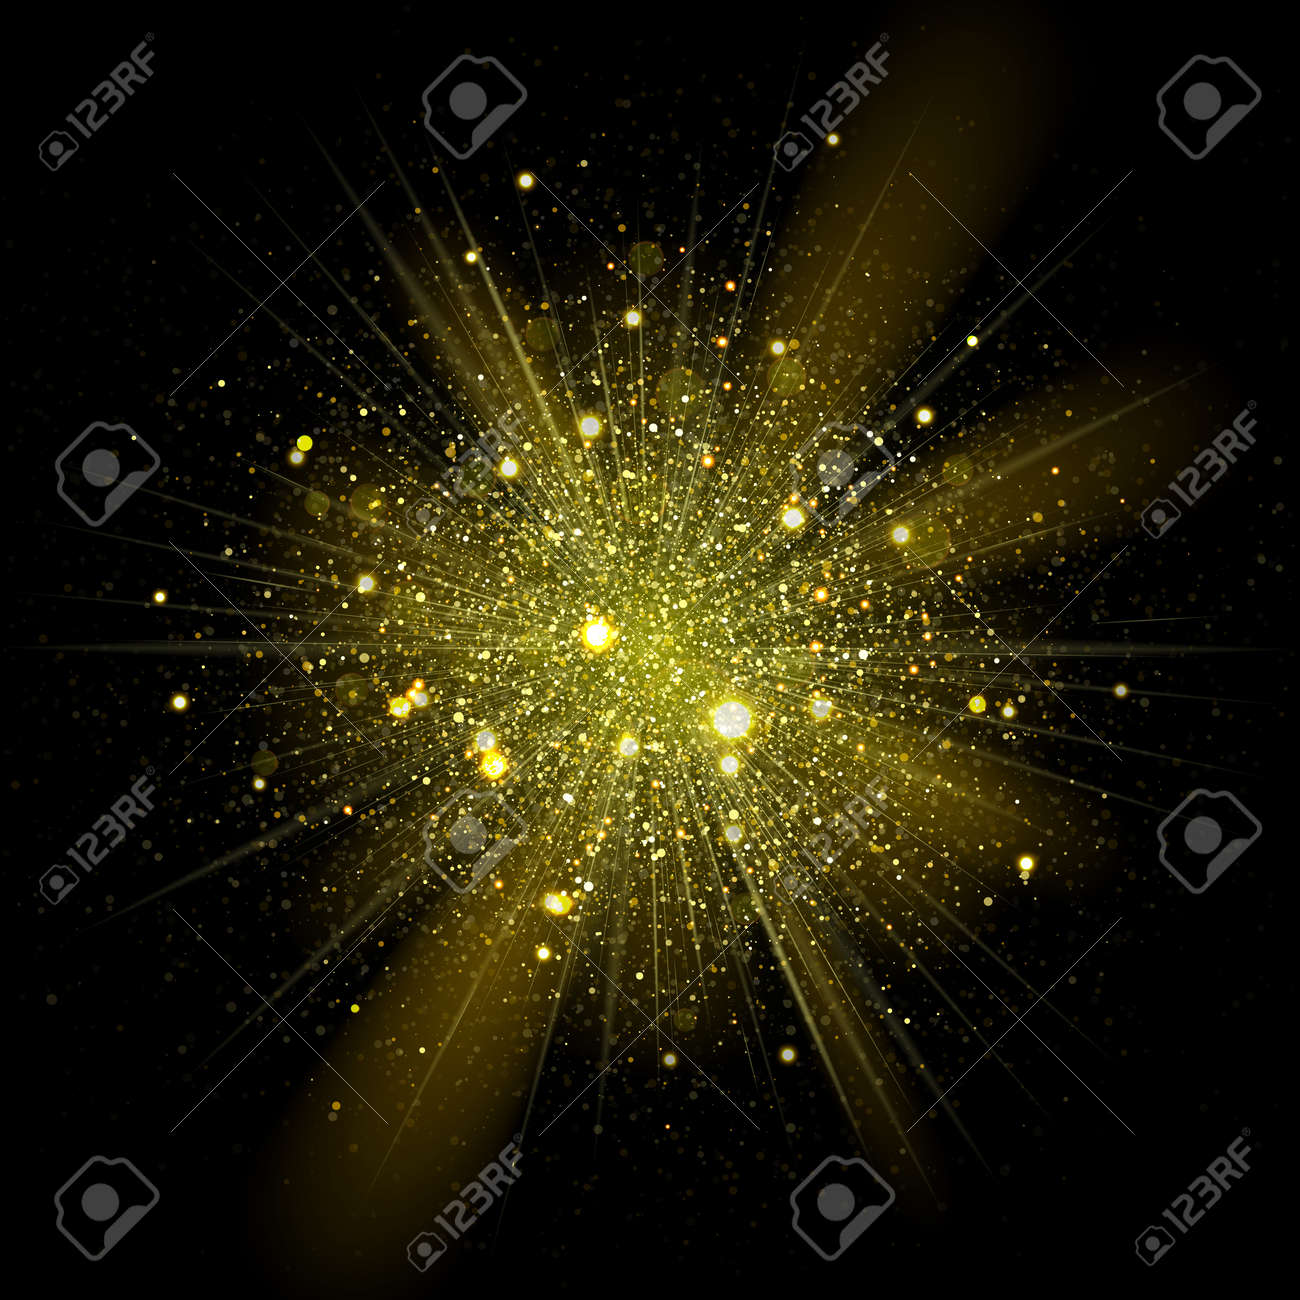 Vector fashionable stars sparks in explosion. Glittering shining particles in starry ouburst in dark cosmic background - 52324698